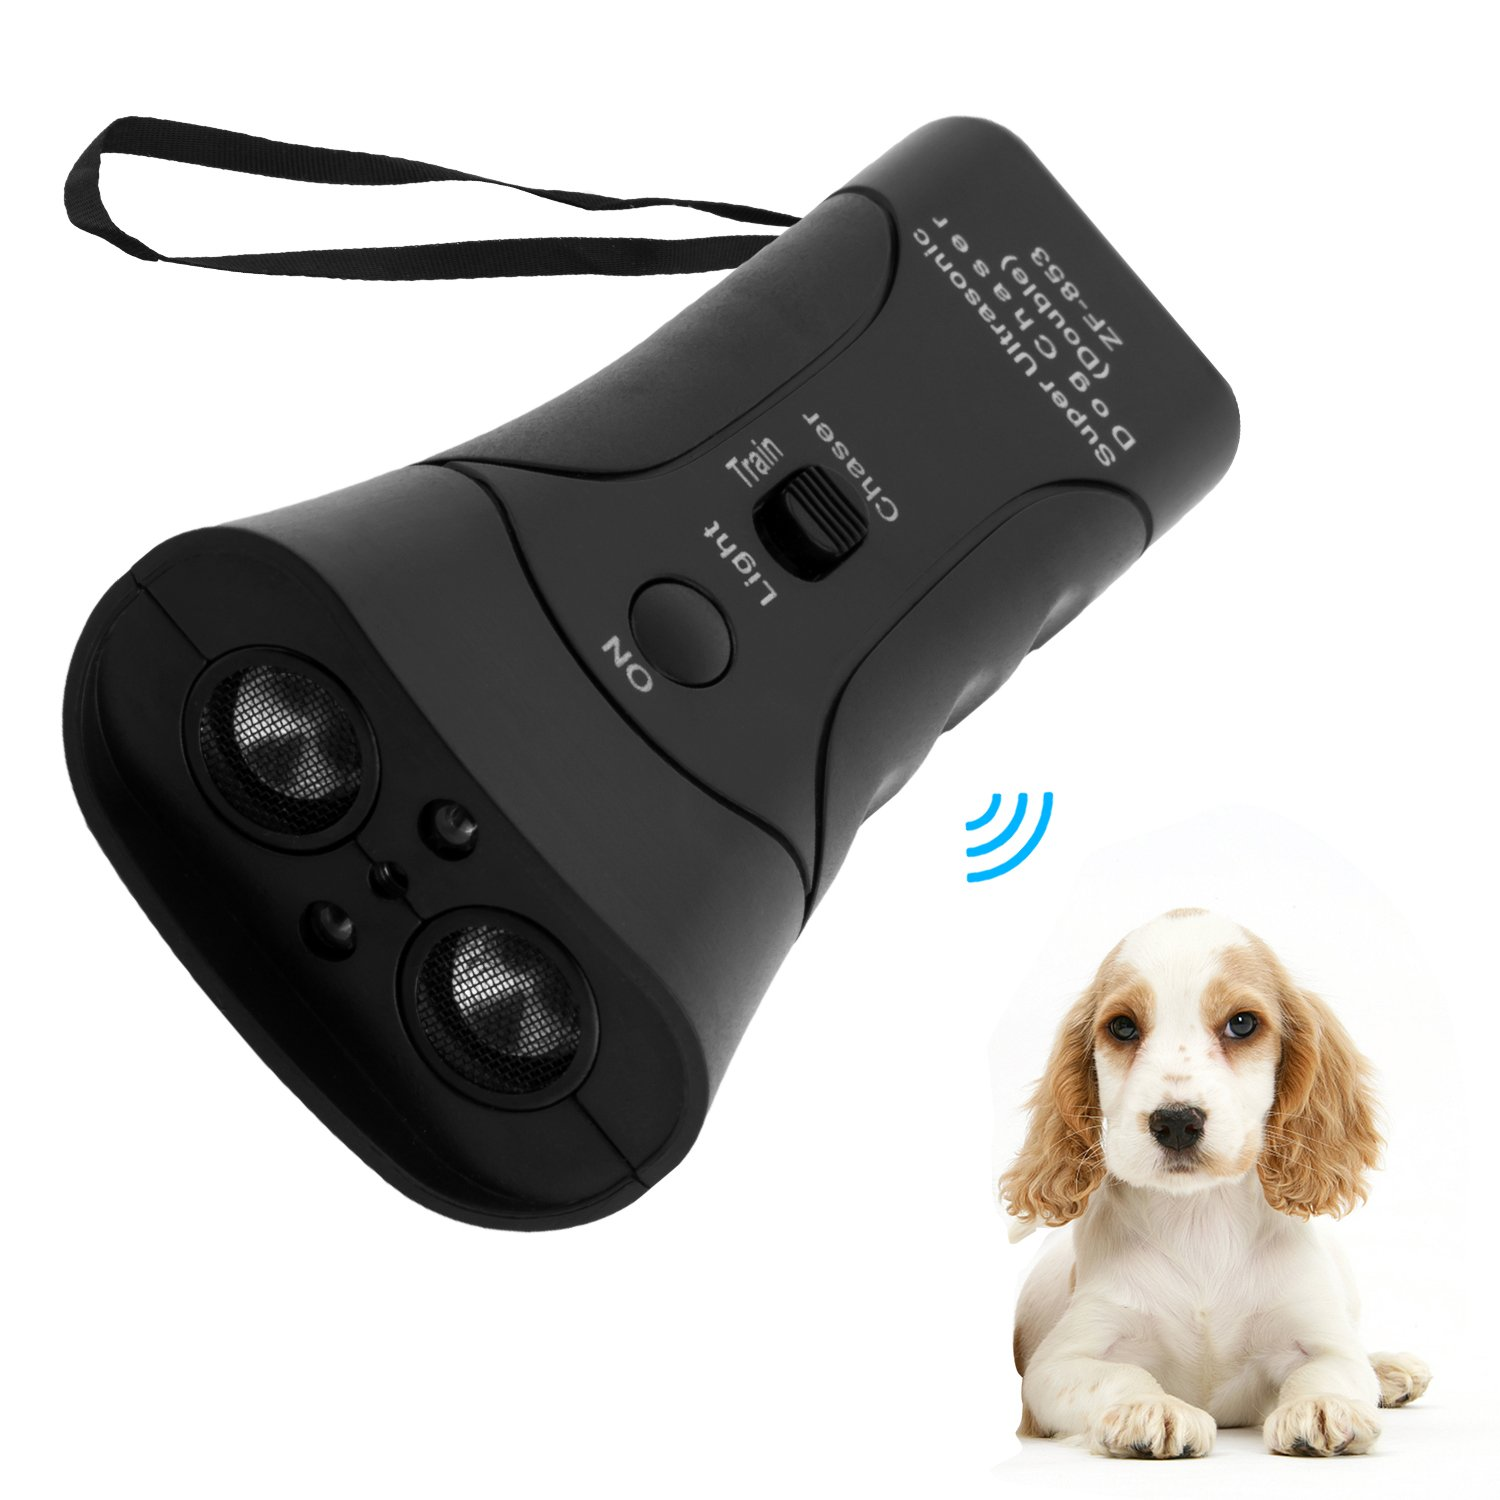 Handheld Dog Repellent, Dual Channel Electronic Animal Repellent, Handy Ultrasonic Dog Training Pet Bark Stopper for Outdoor Camping Garden by Meter.llc (Image #1)